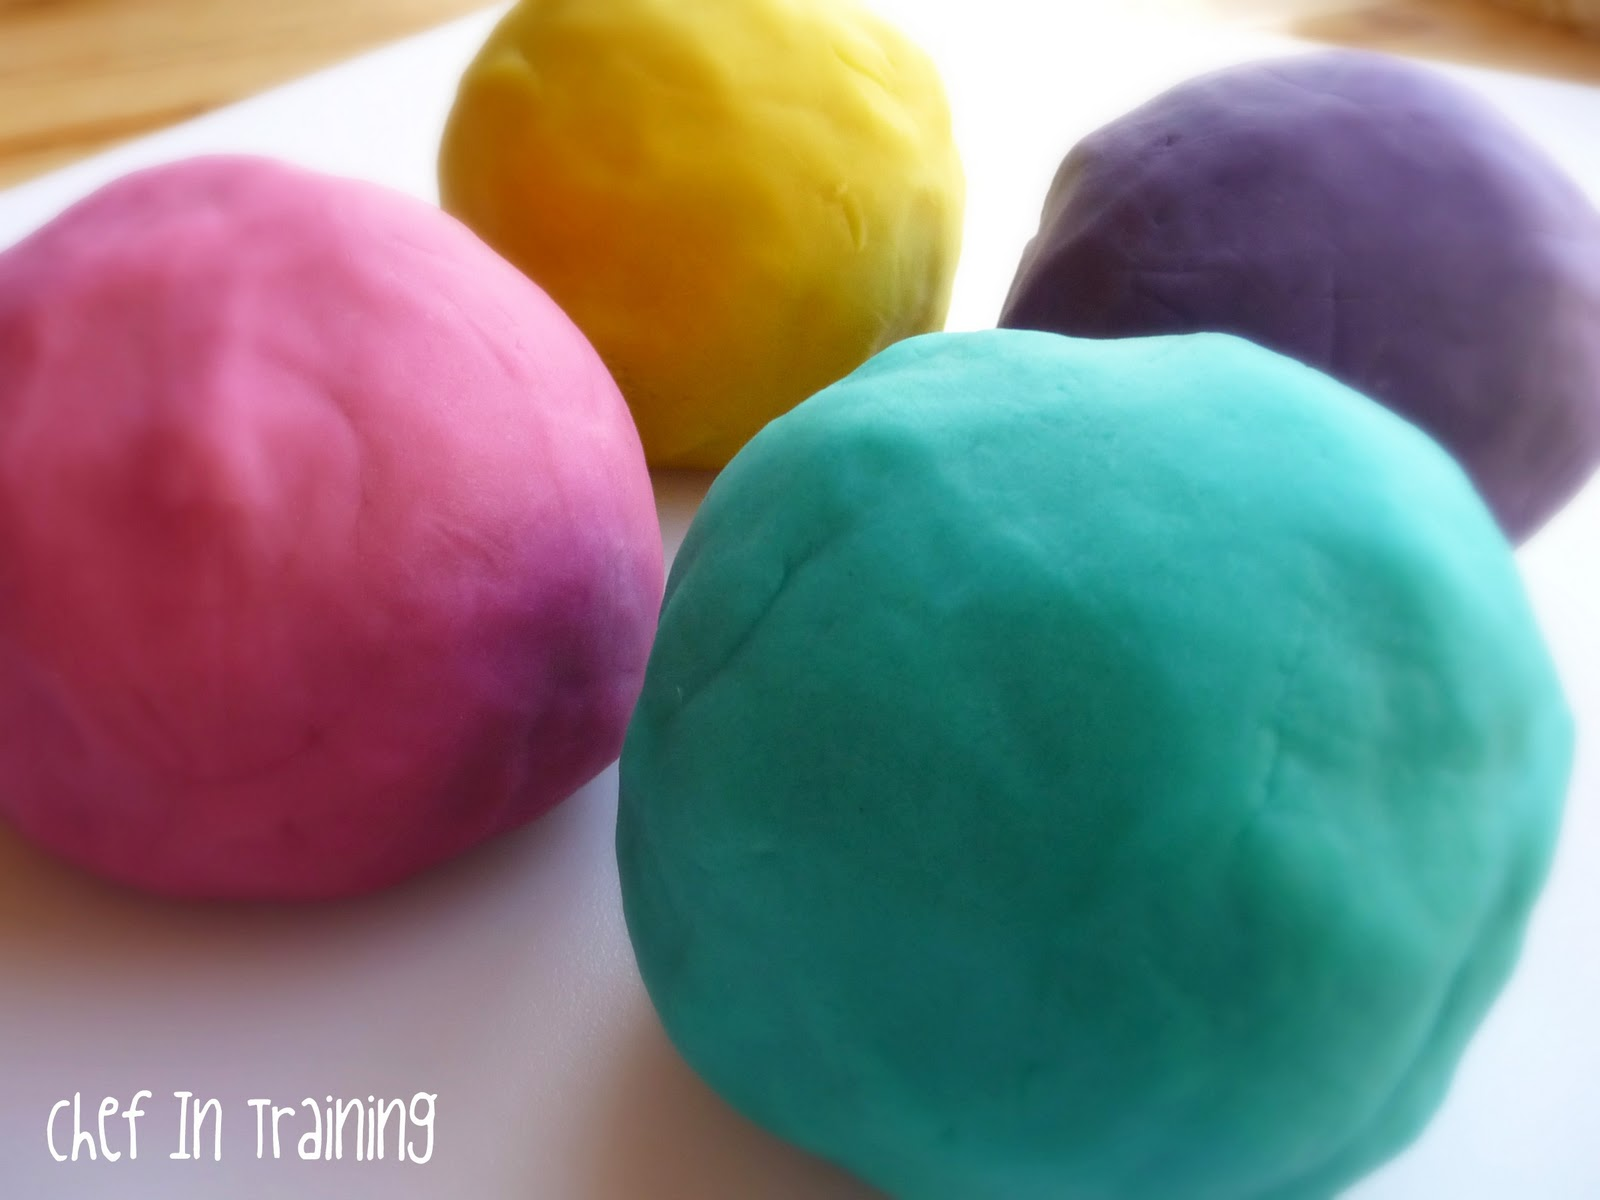 Squishy Ball Play Doh : The Softest and Squishiest Homemade Playdough - Chef in Training